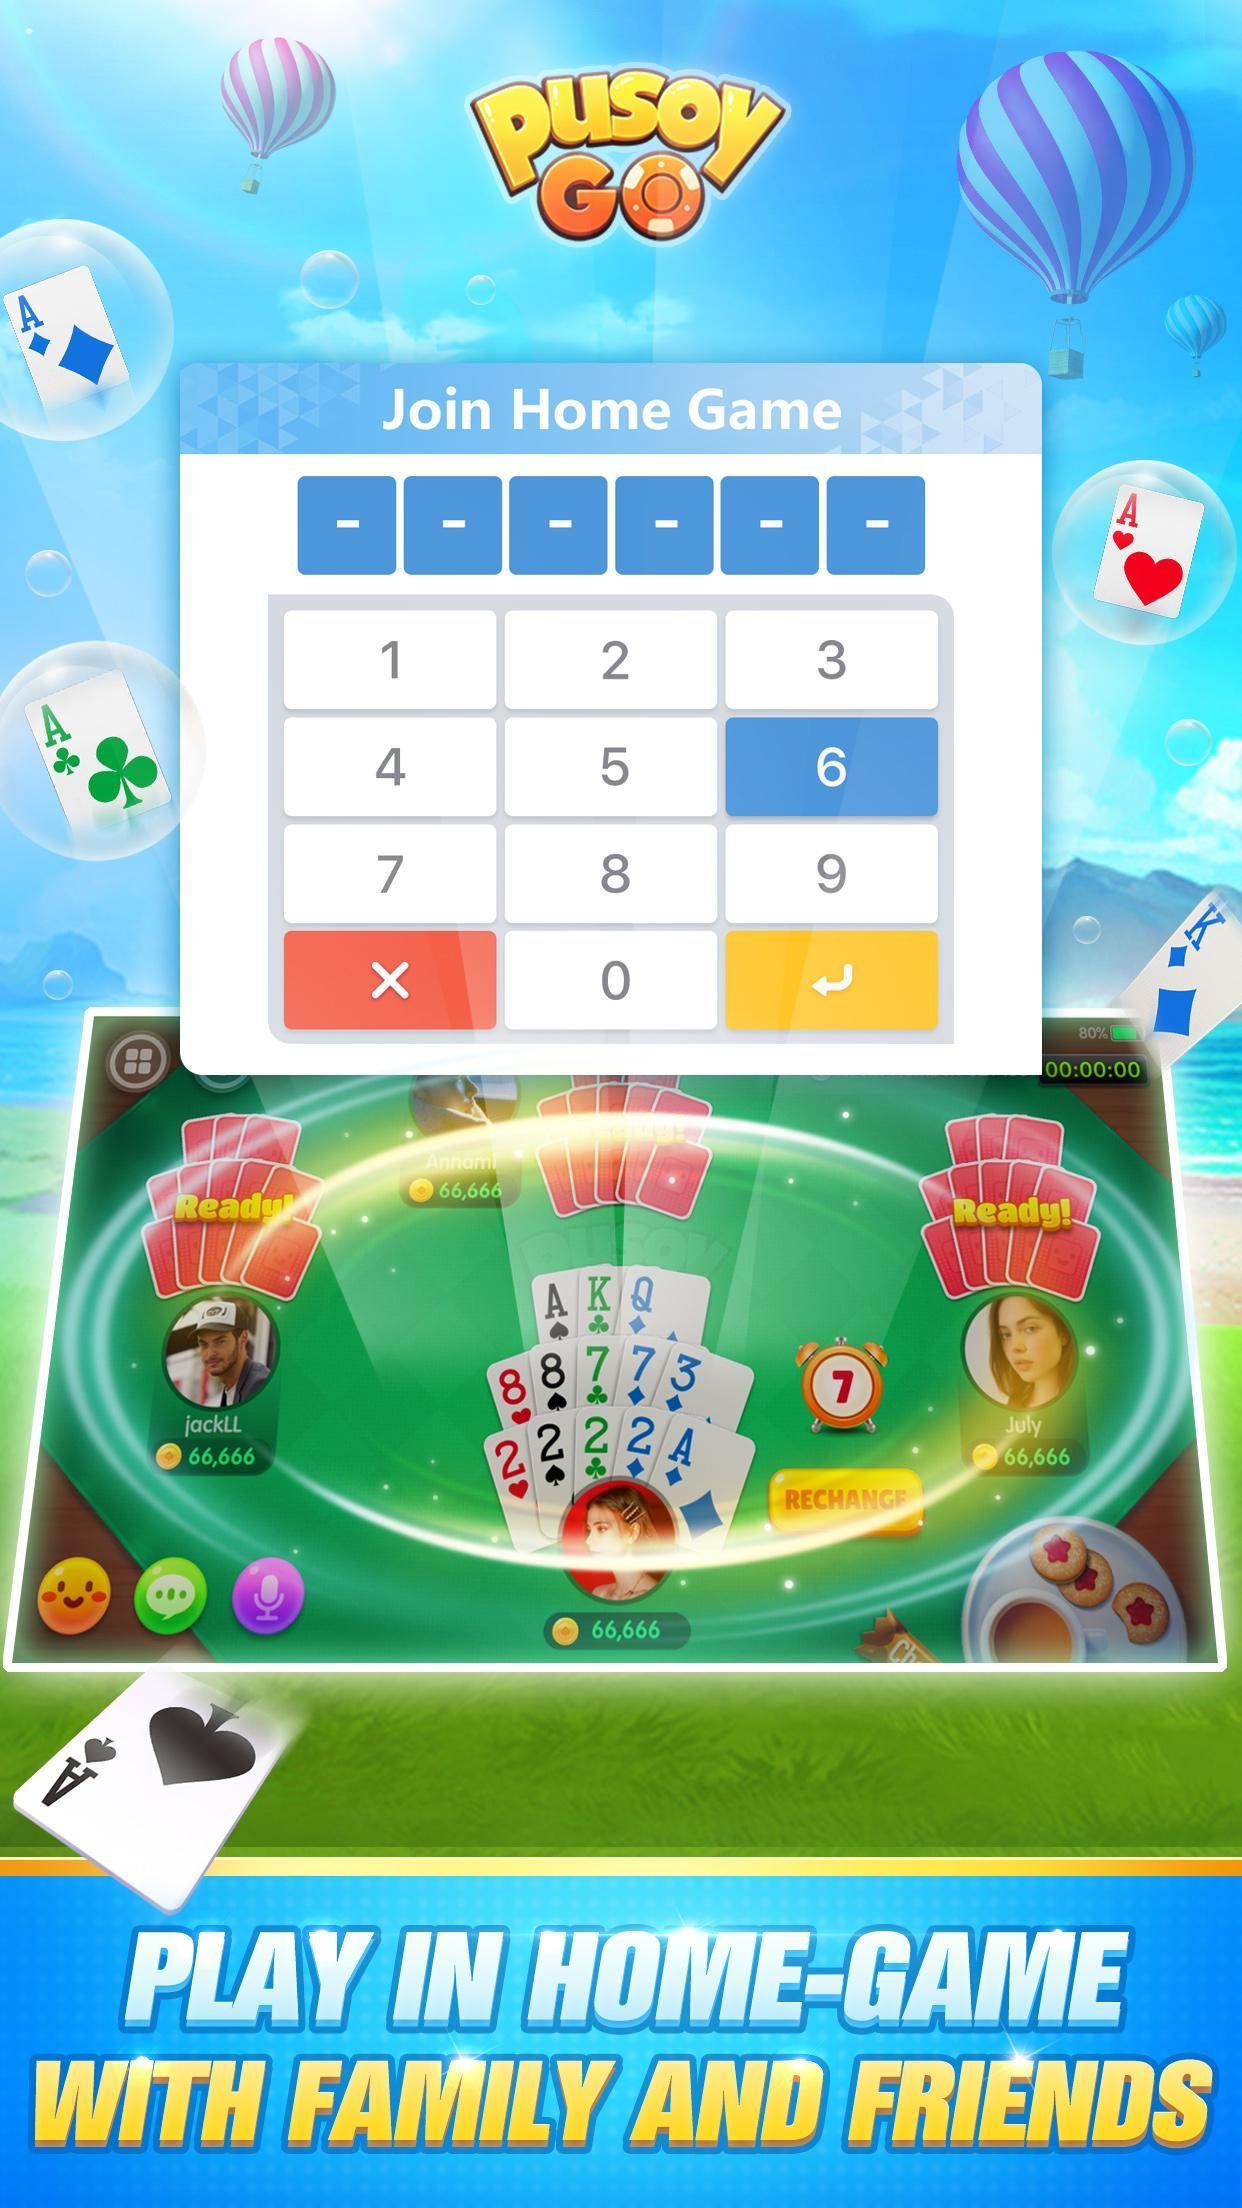 Pusoy Go Free Online Chinese Poker(13 Cards game) 2.9.24 Screenshot 5